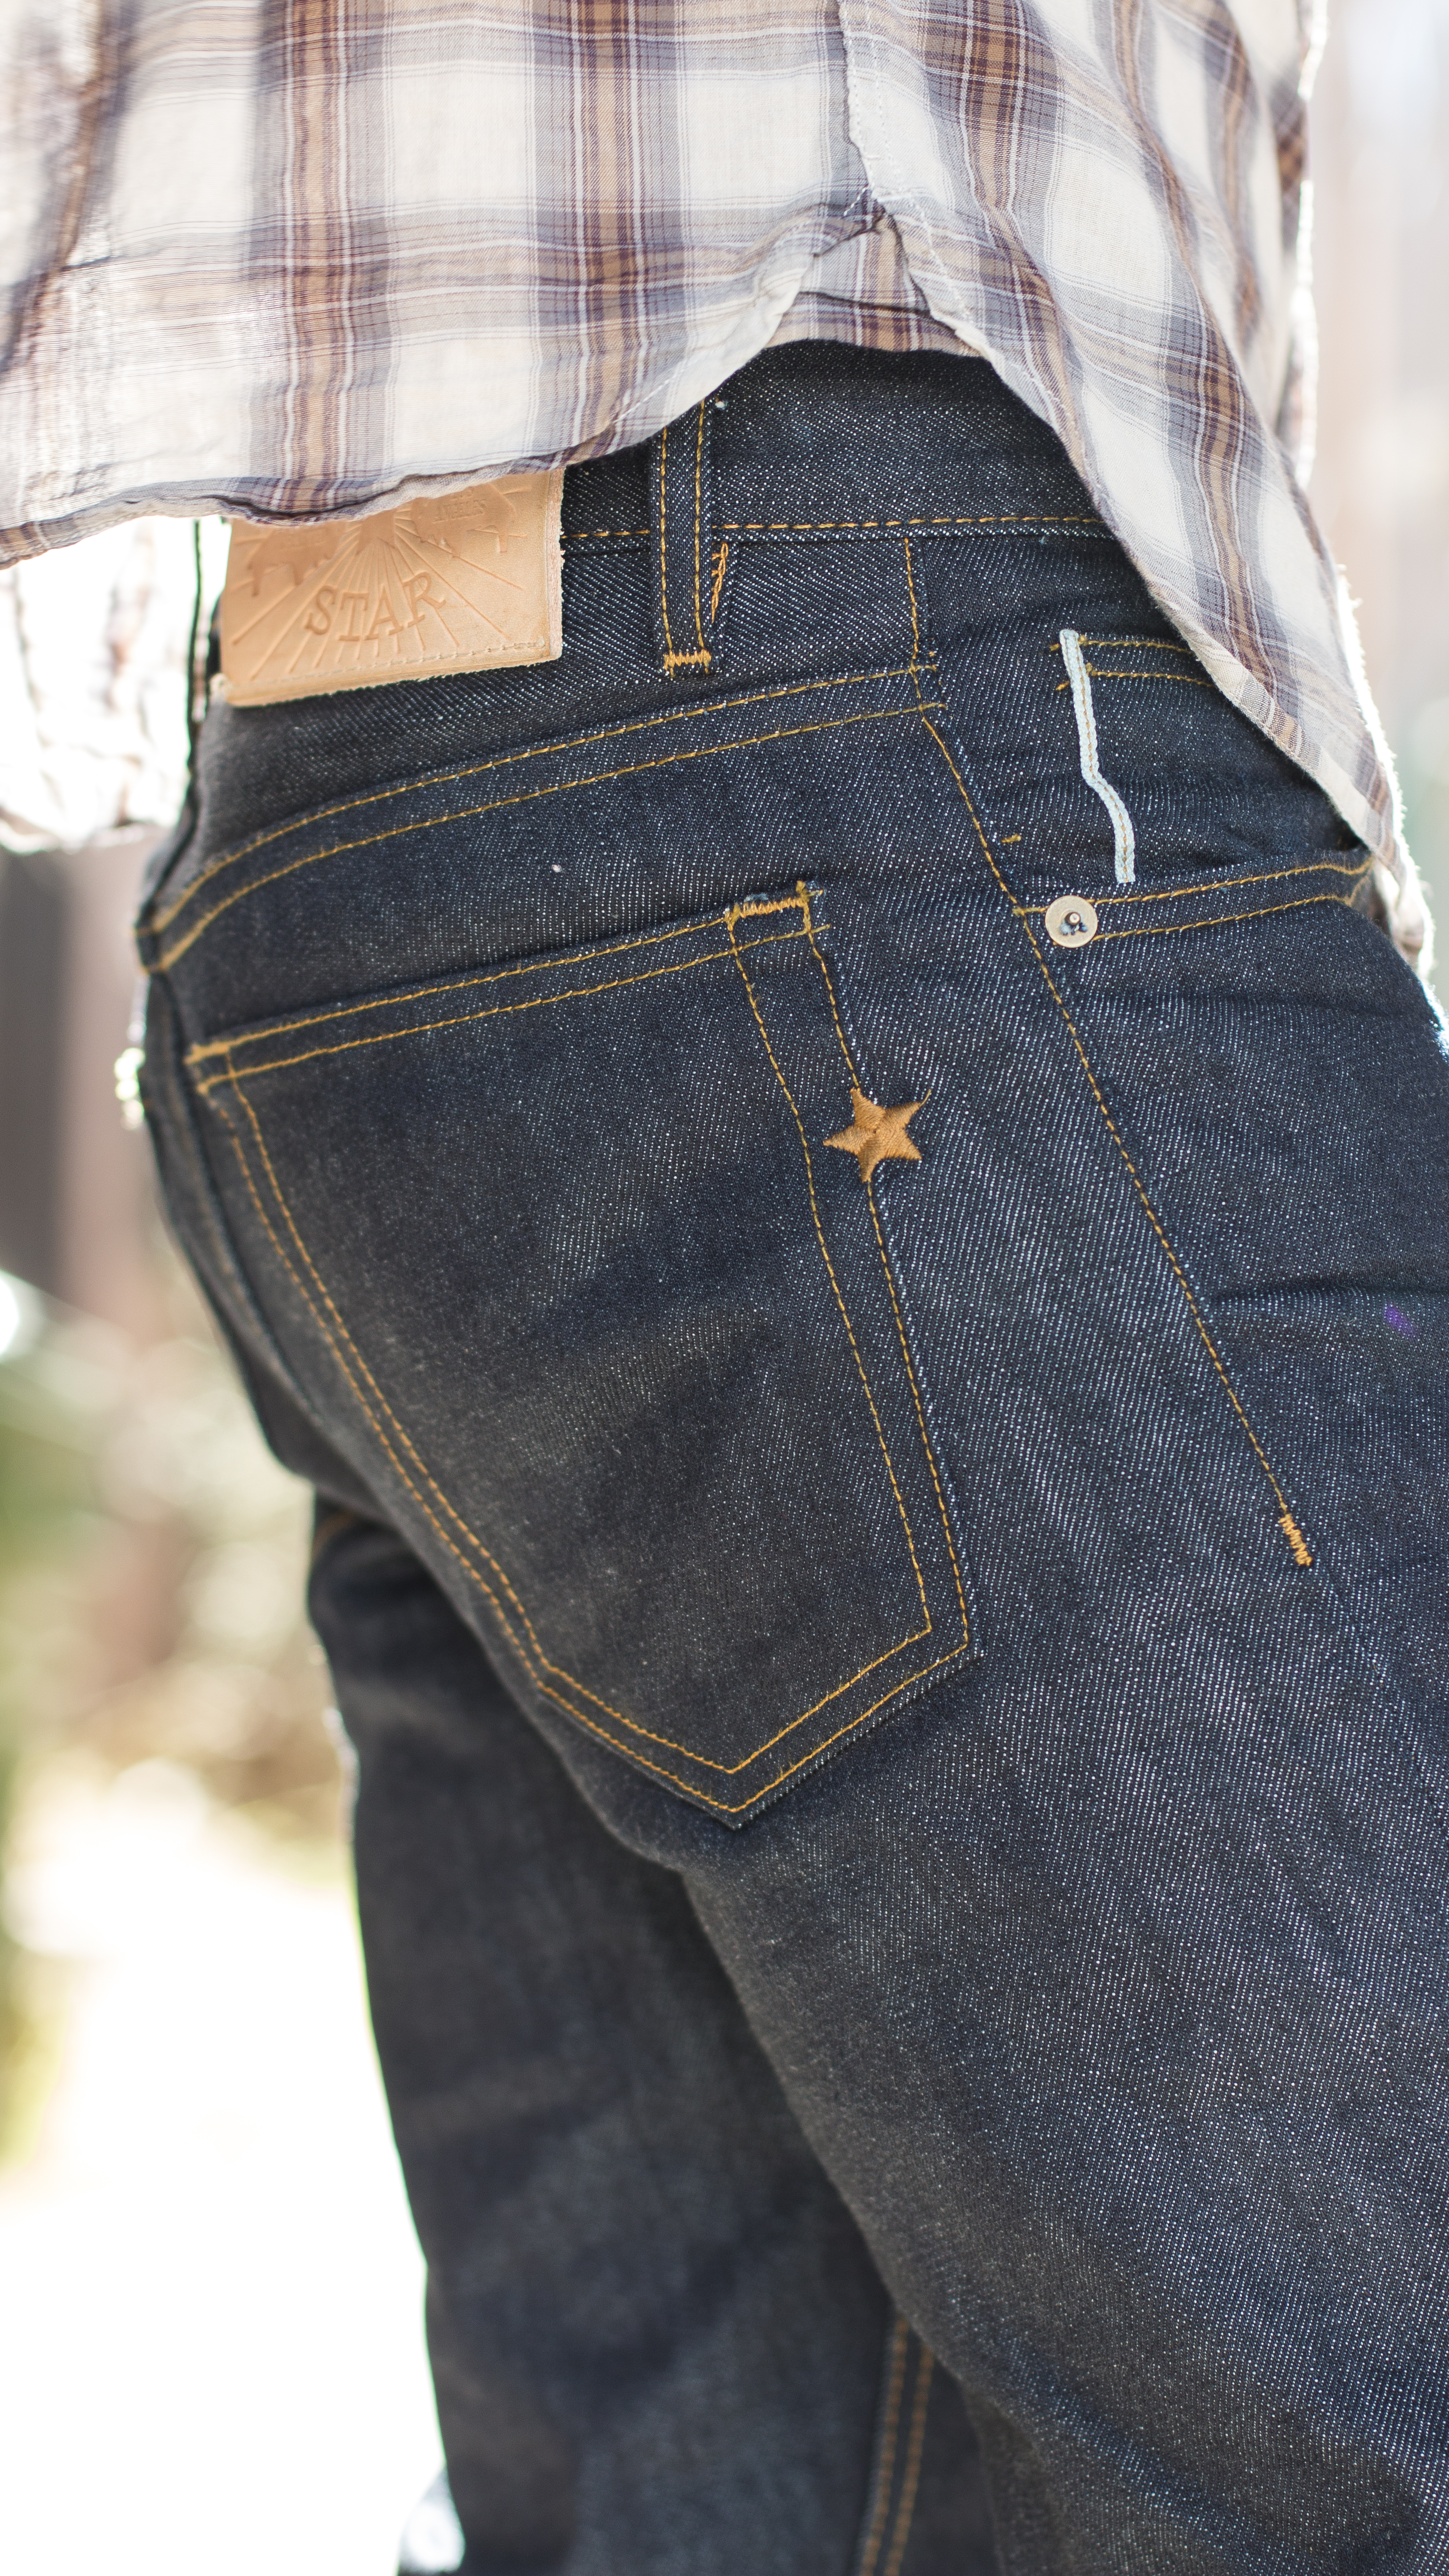 a236702e1cdd30 The perfect jeans for walking off into the sunset! Pick up a pair for $89  at Brave Star Selvedge.